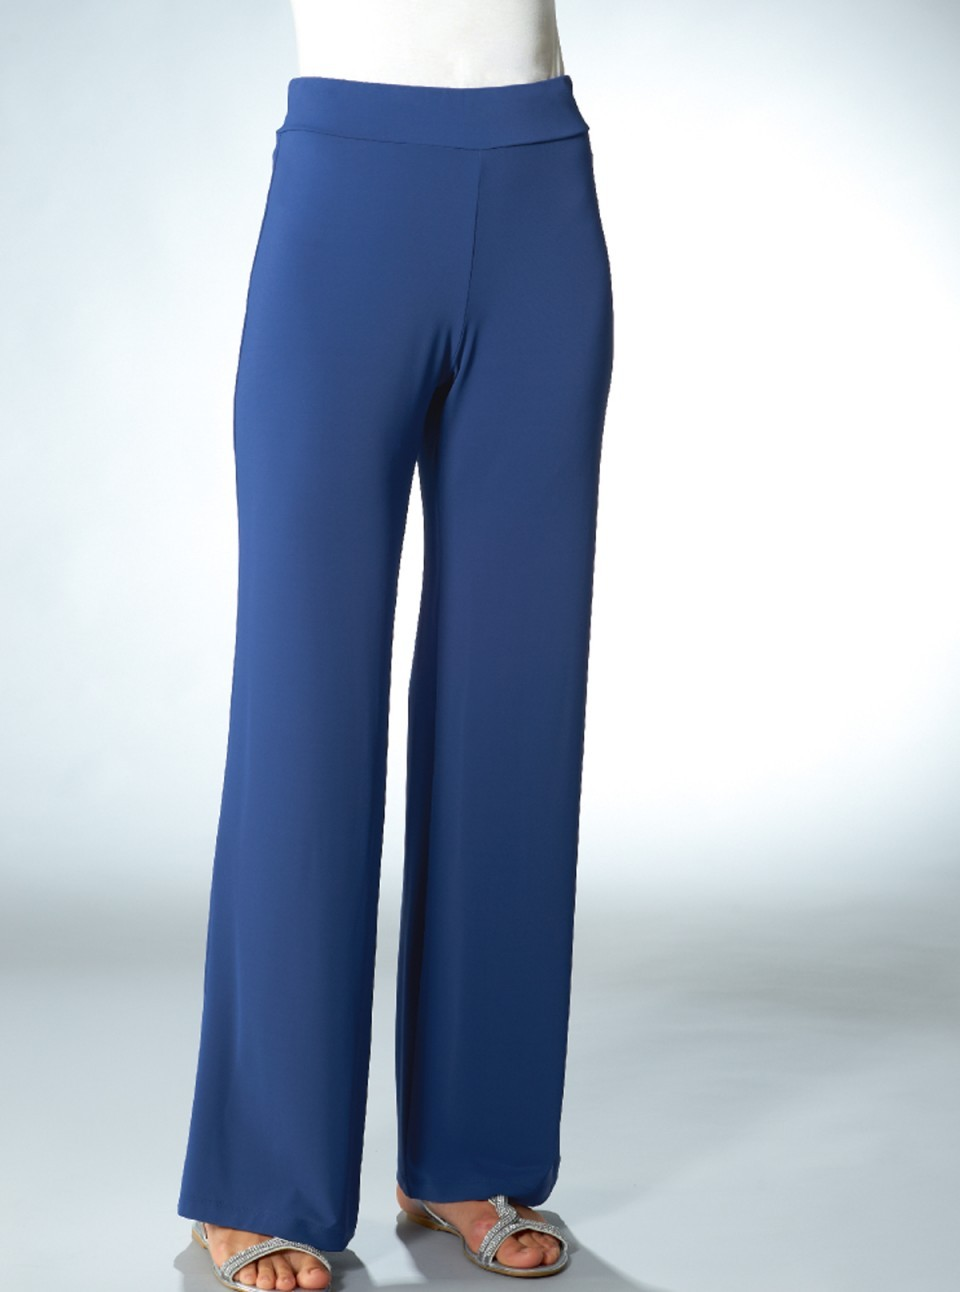 dn palazzo trousers